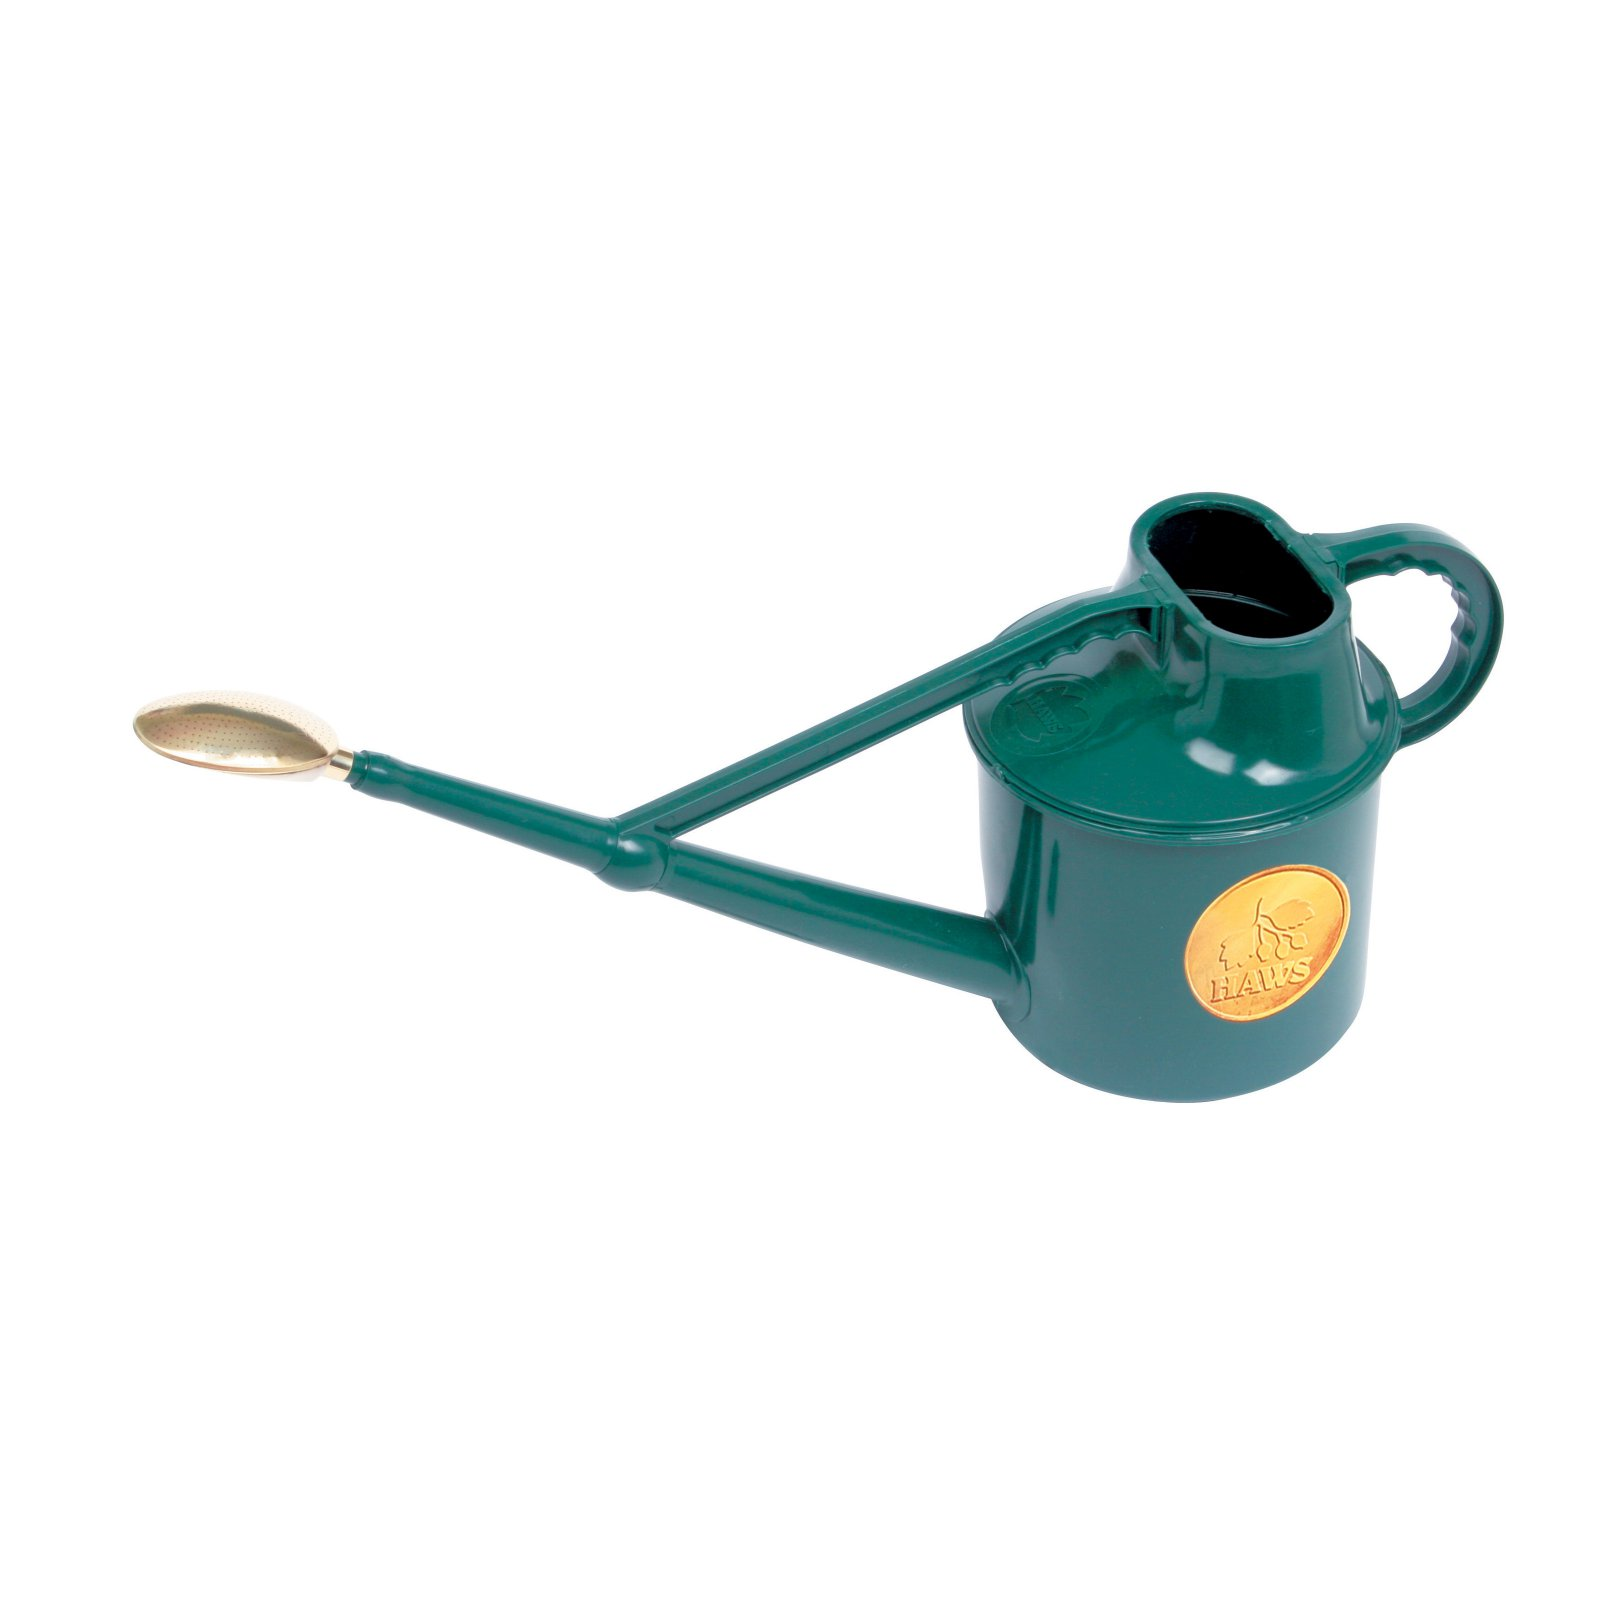 Haws 7 Liters Plastic Green Deluxe Outdoor Watering Can by Bosmere Inc